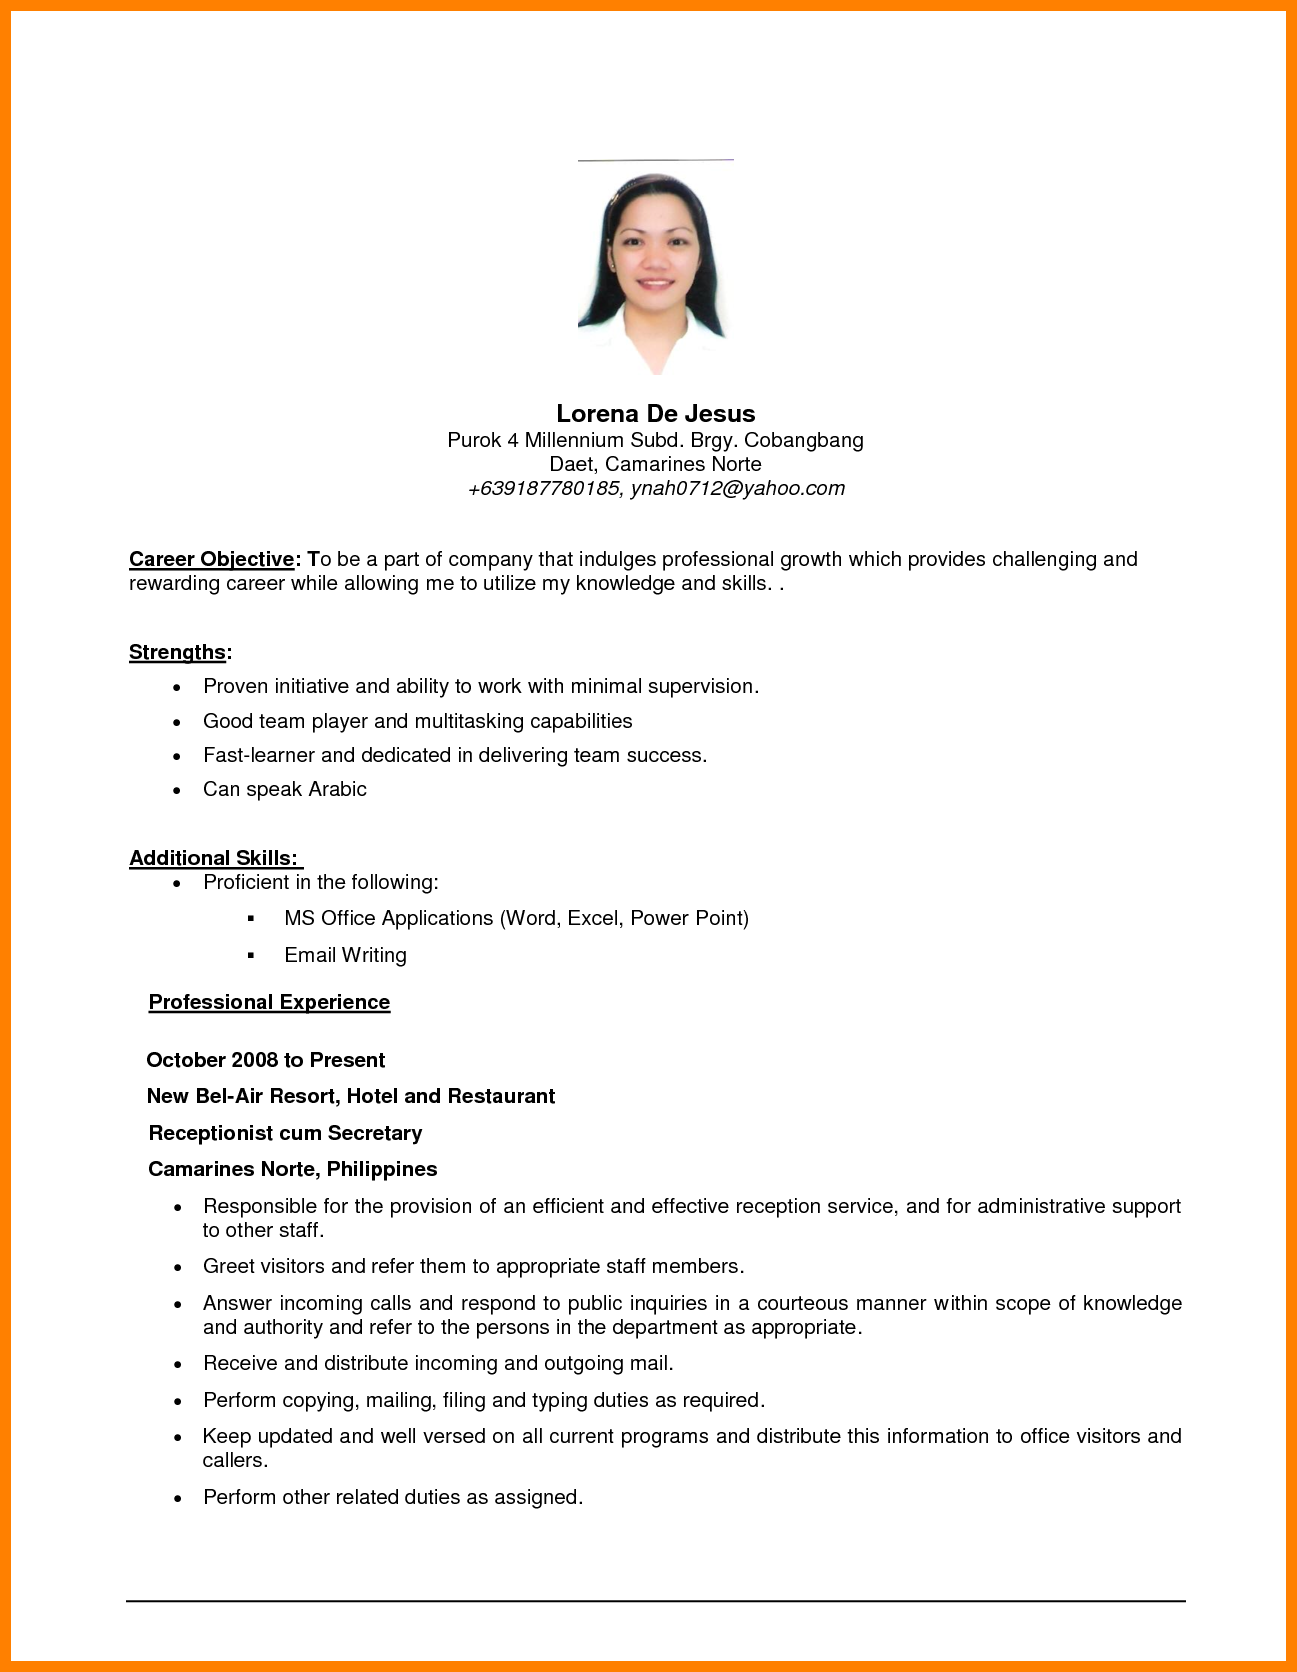 Example Resume Objective Resume Objective Sample Computer Skills Examples For Example Your